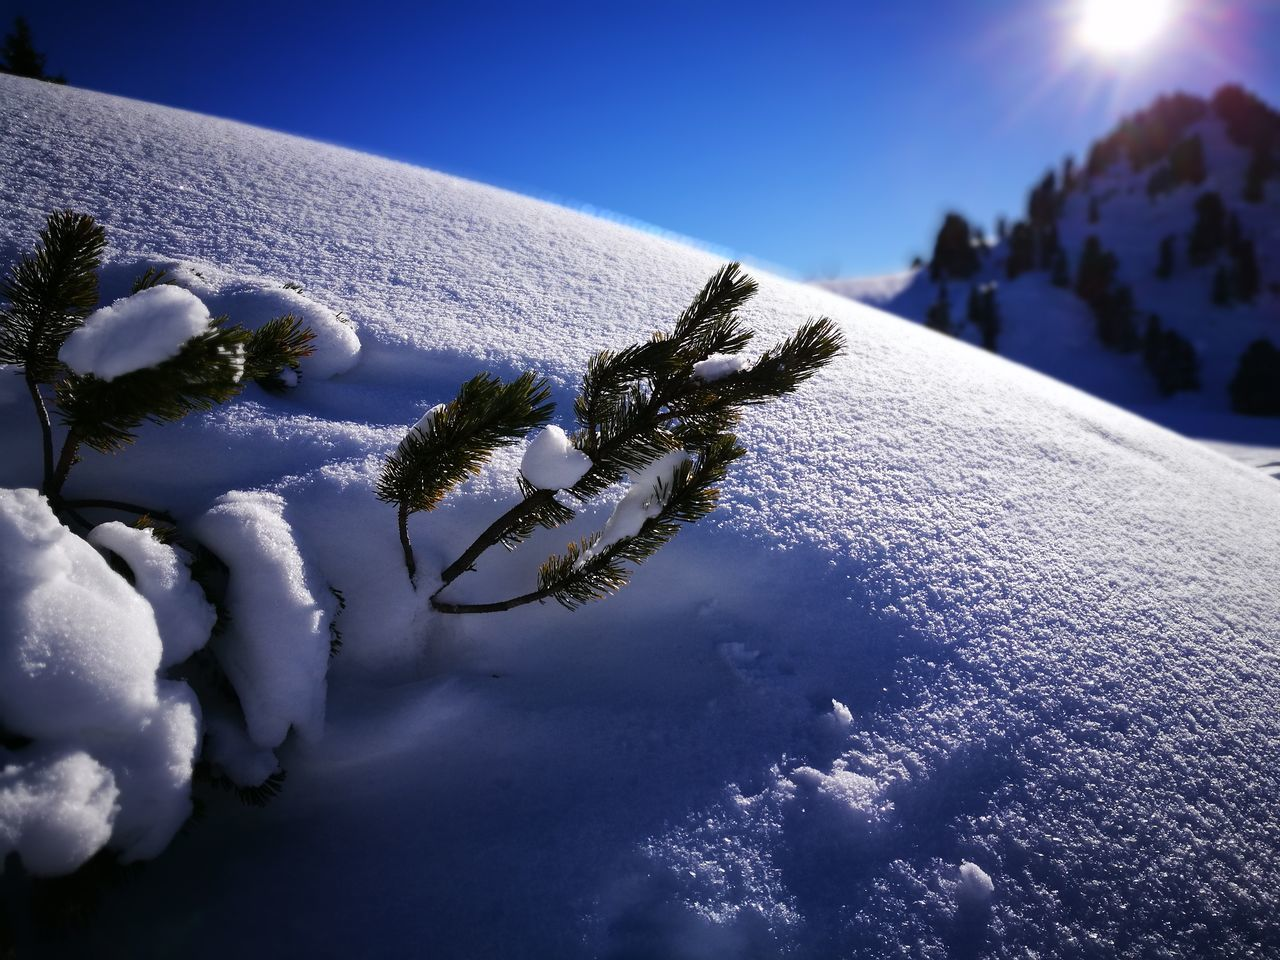 snow, cold temperature, winter, nature, beauty in nature, no people, close-up, scenics, outdoors, sky, day, blue, sea, tree